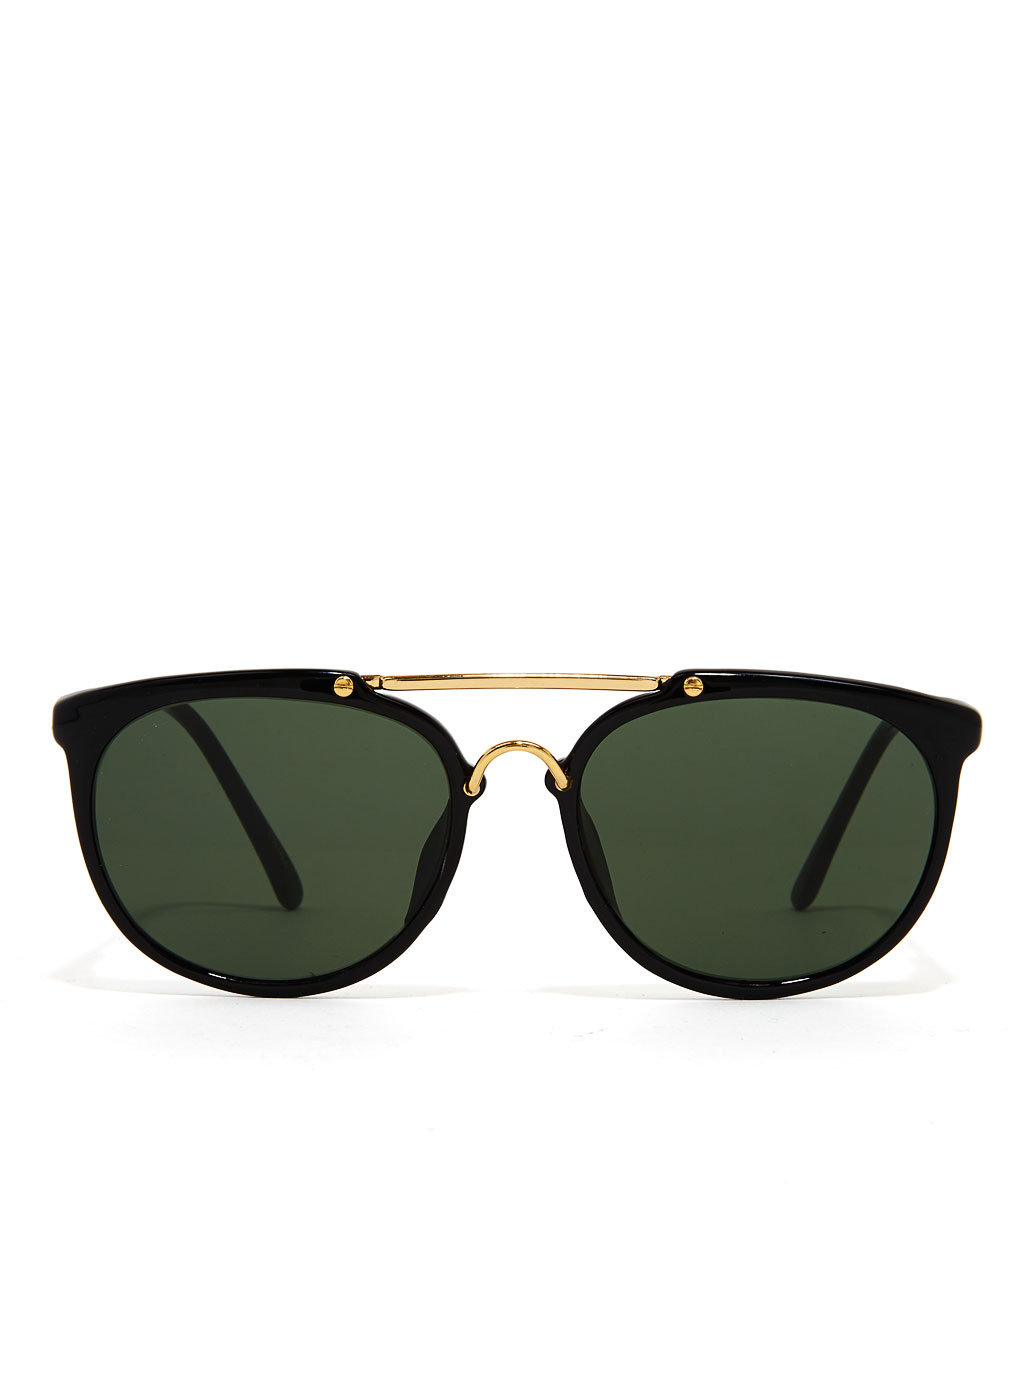 Boss Sunglass | American Apparel